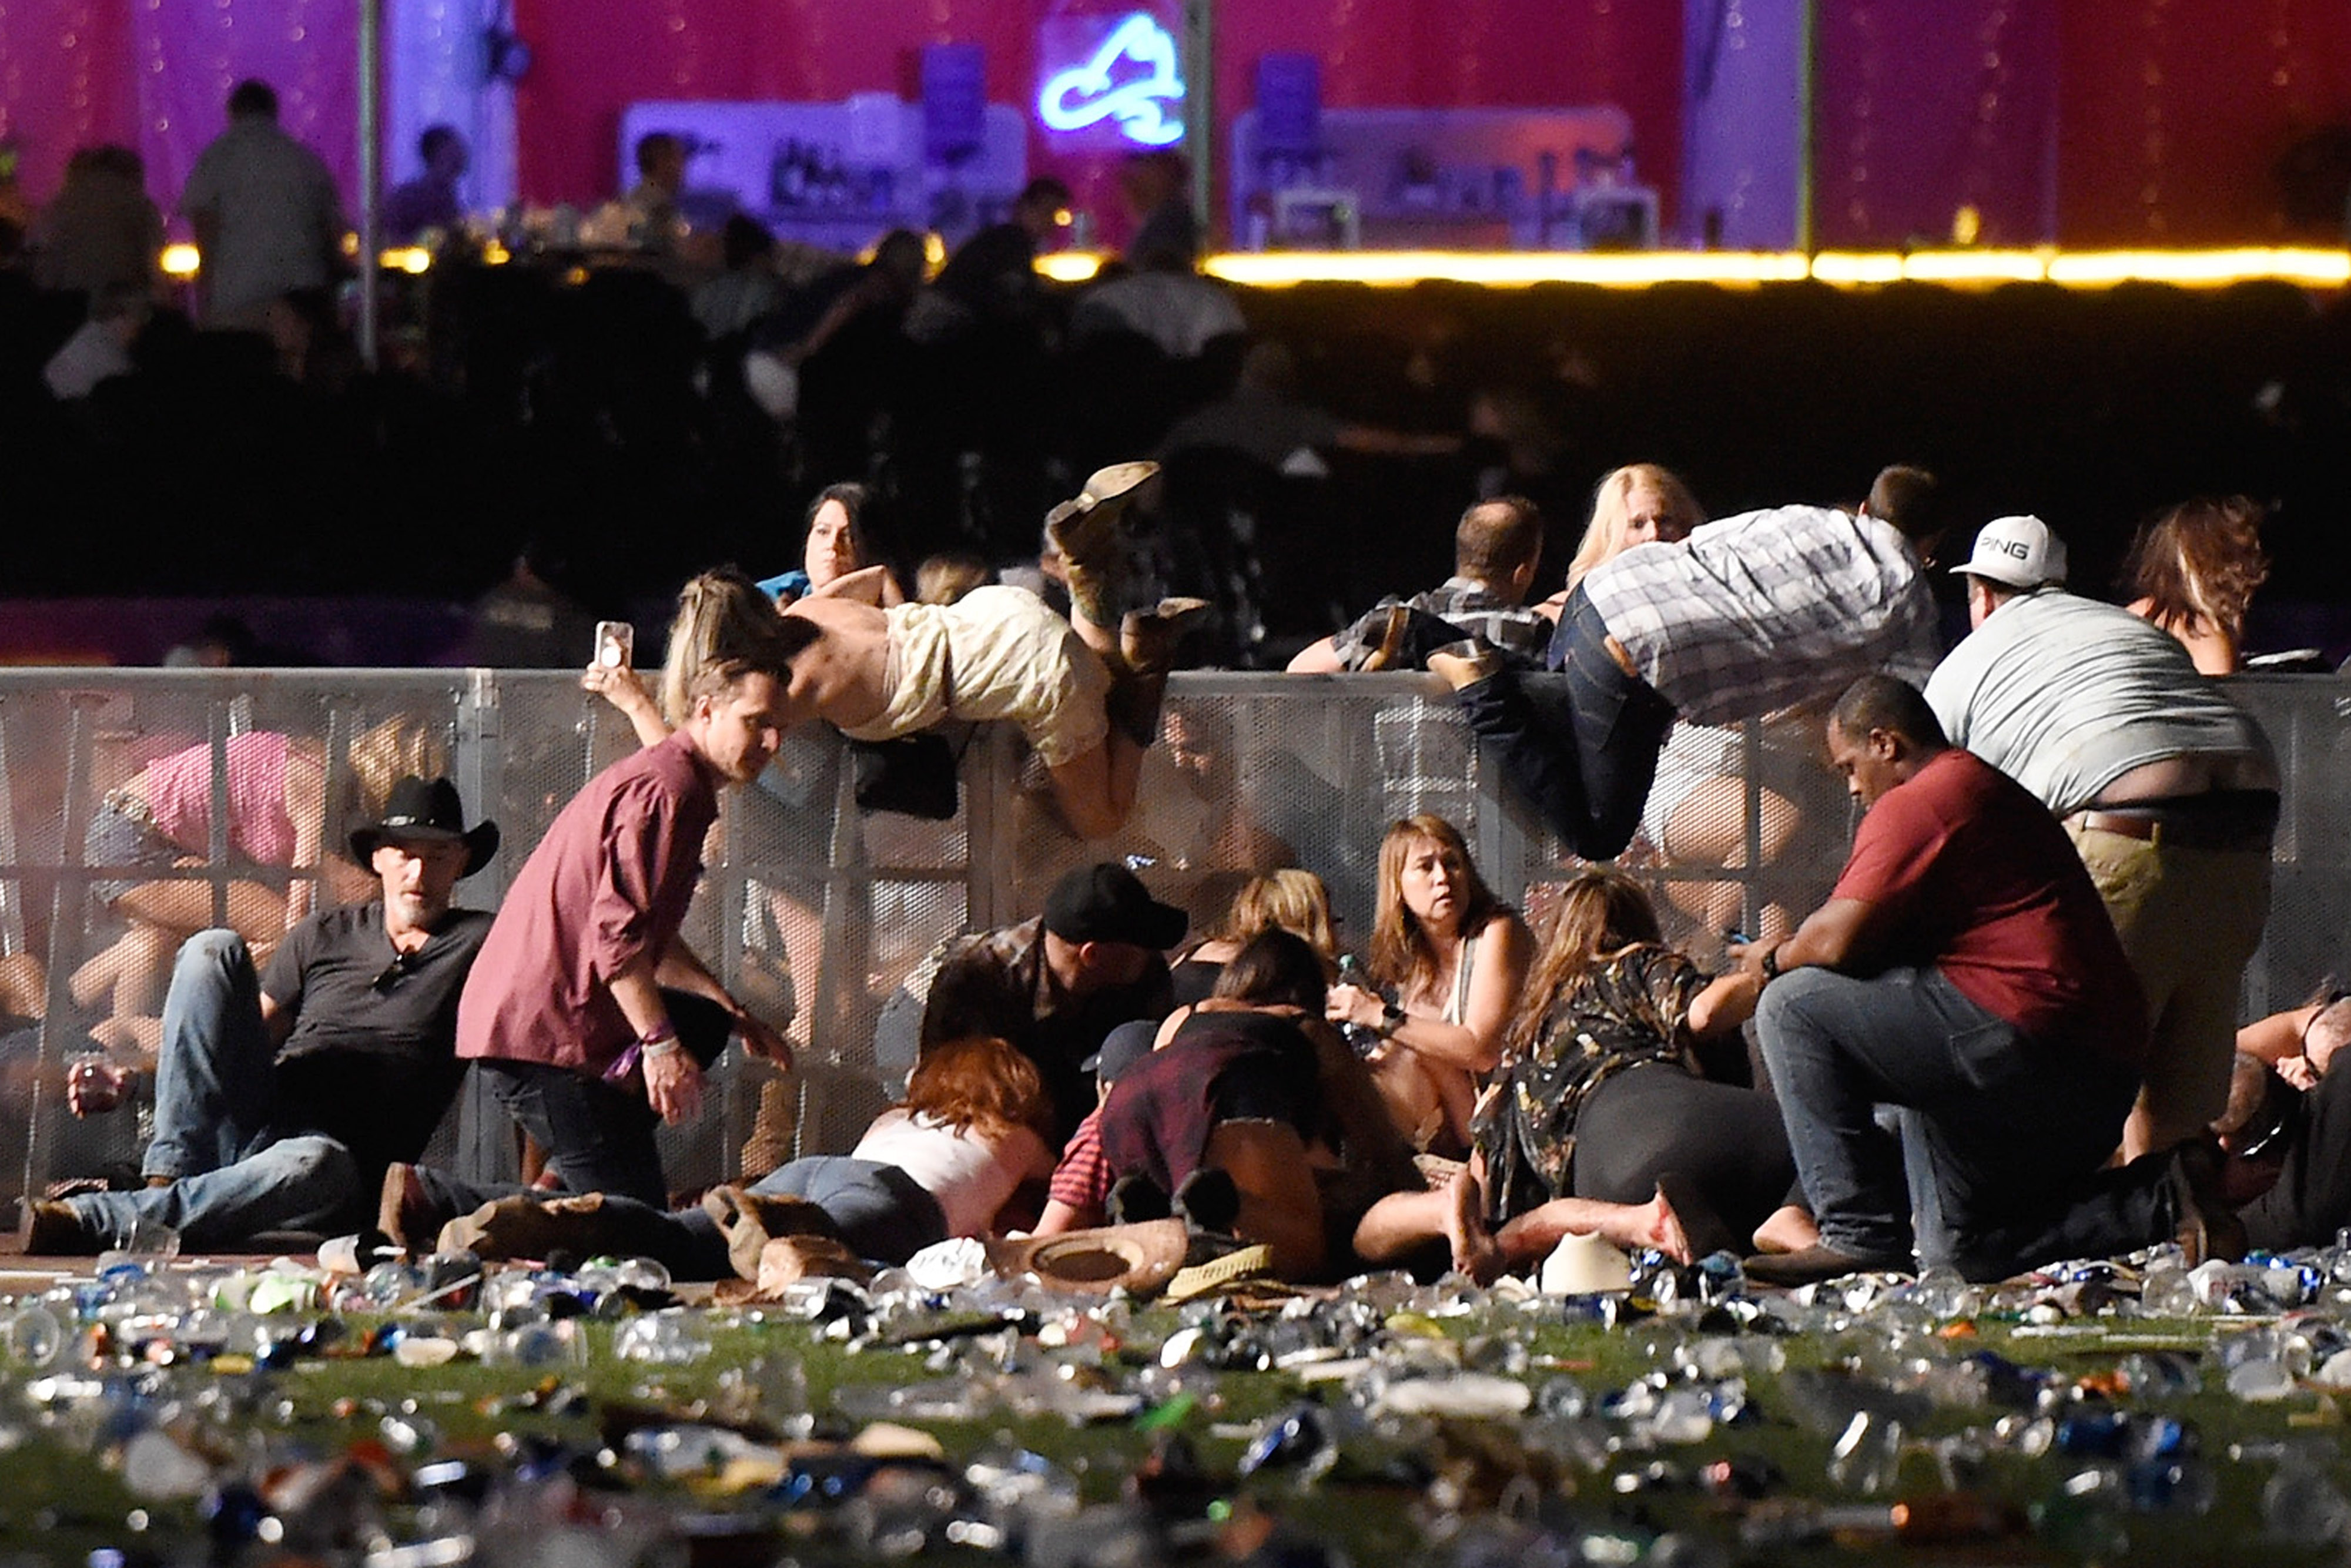 People scramble for shelter at the Route 91 Harvest country music festival.